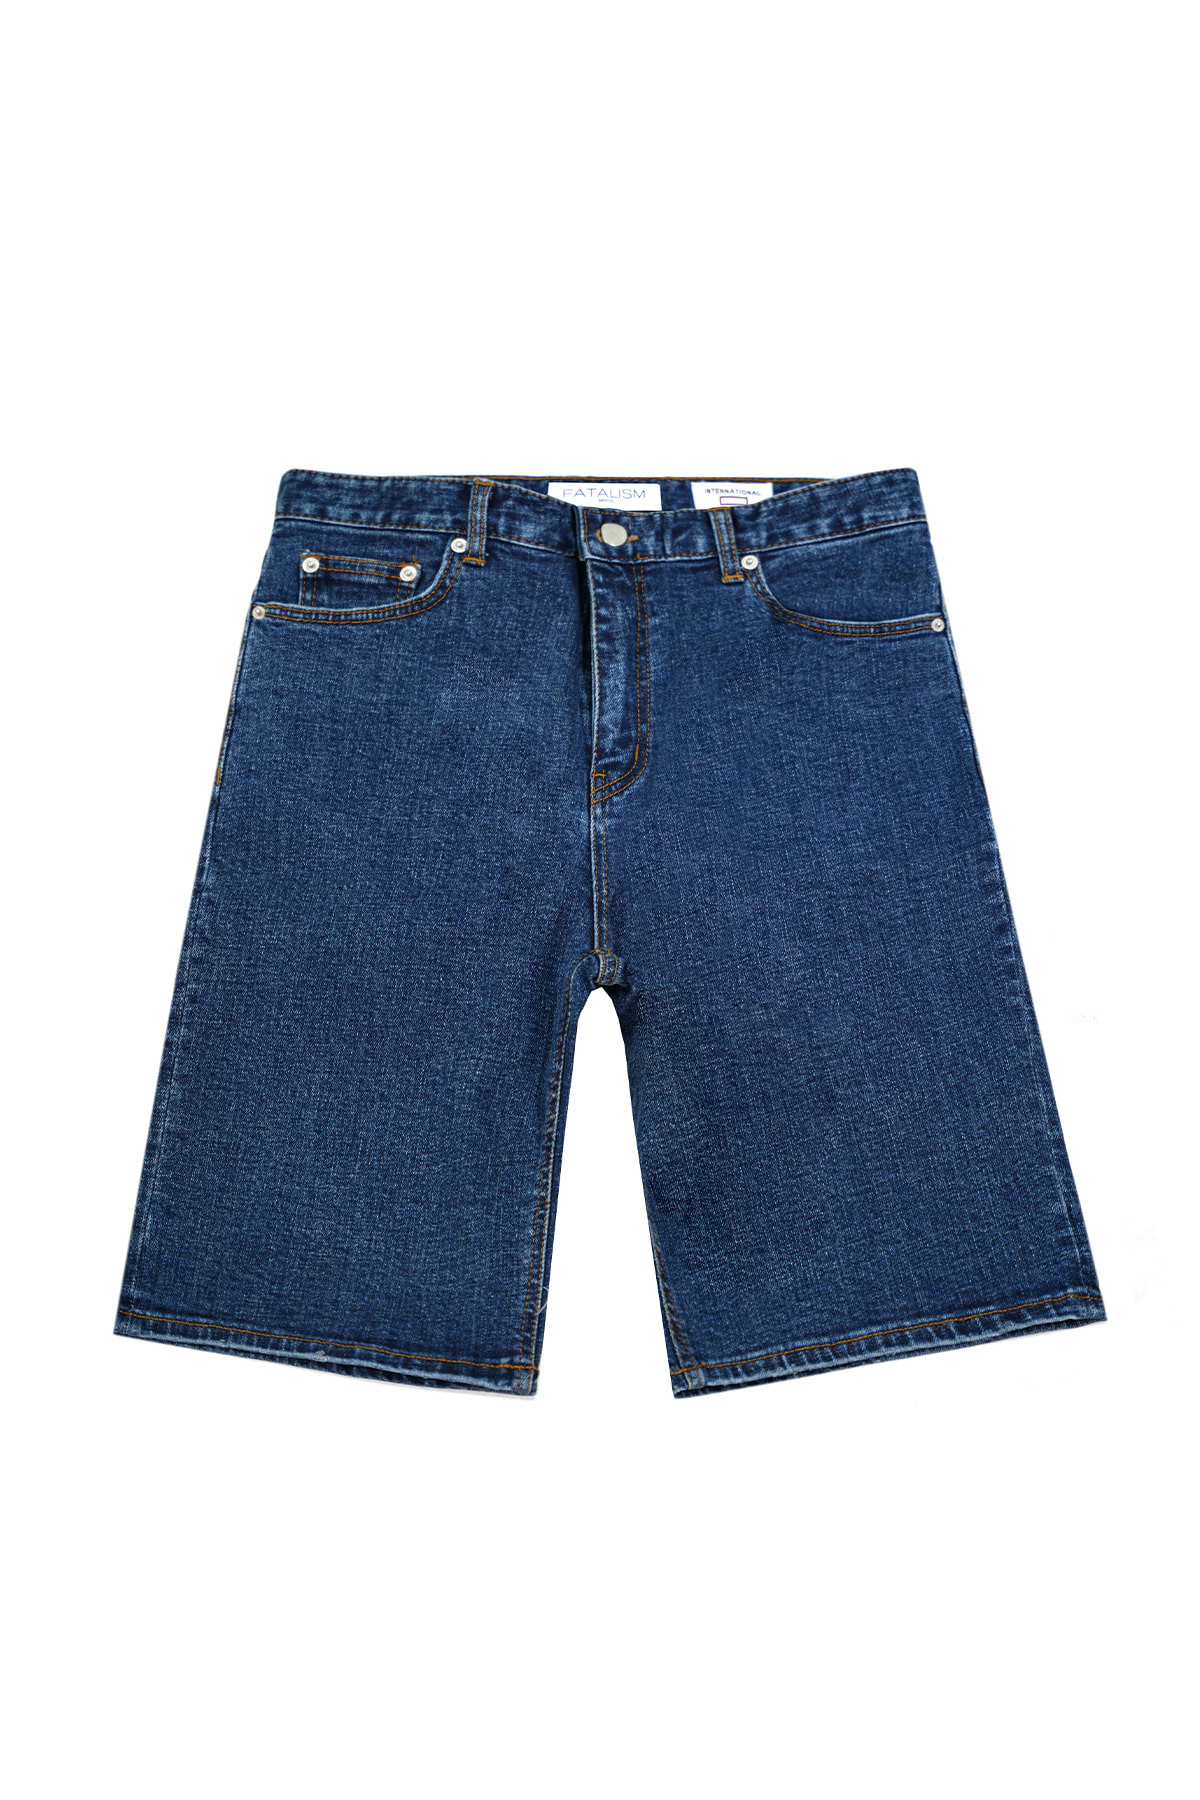 #0141 cannon slim short pants